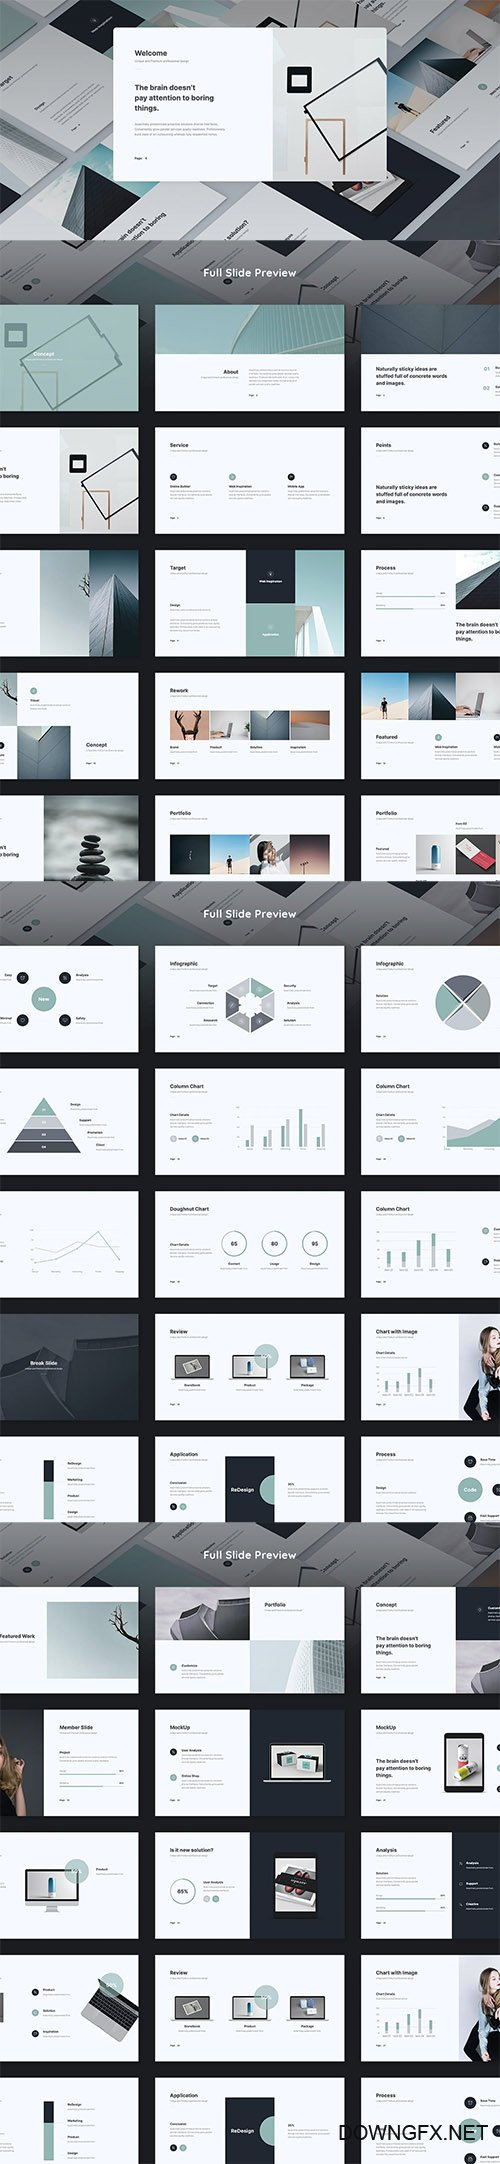 IVE - Minimal Presentation Template (PPTX)